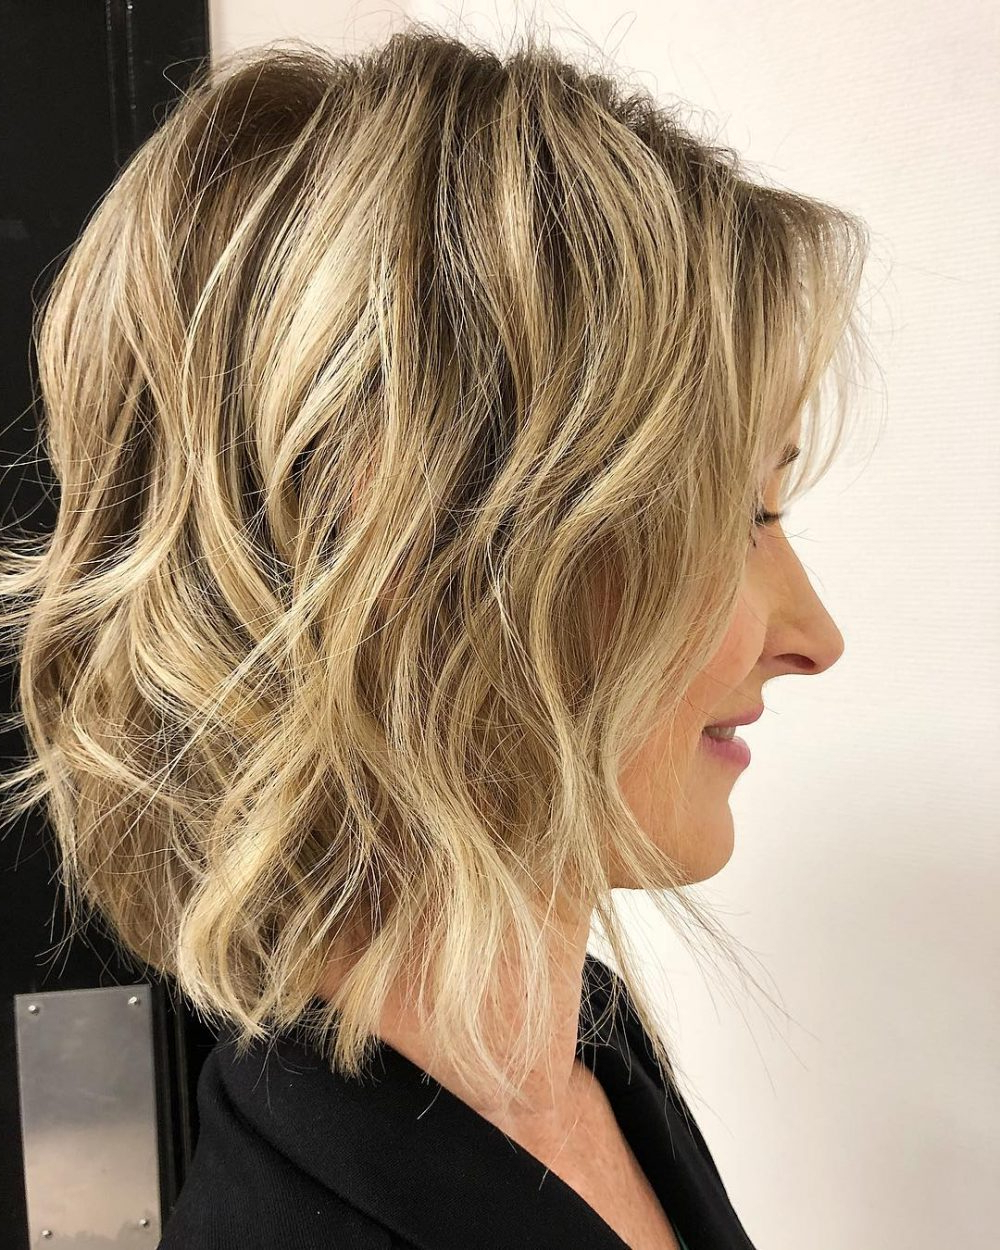 43 Perfect Short Hairstyles For Fine Hair In 2018 Regarding Nape Length Brown Bob Hairstyles With Messy Curls (View 15 of 20)